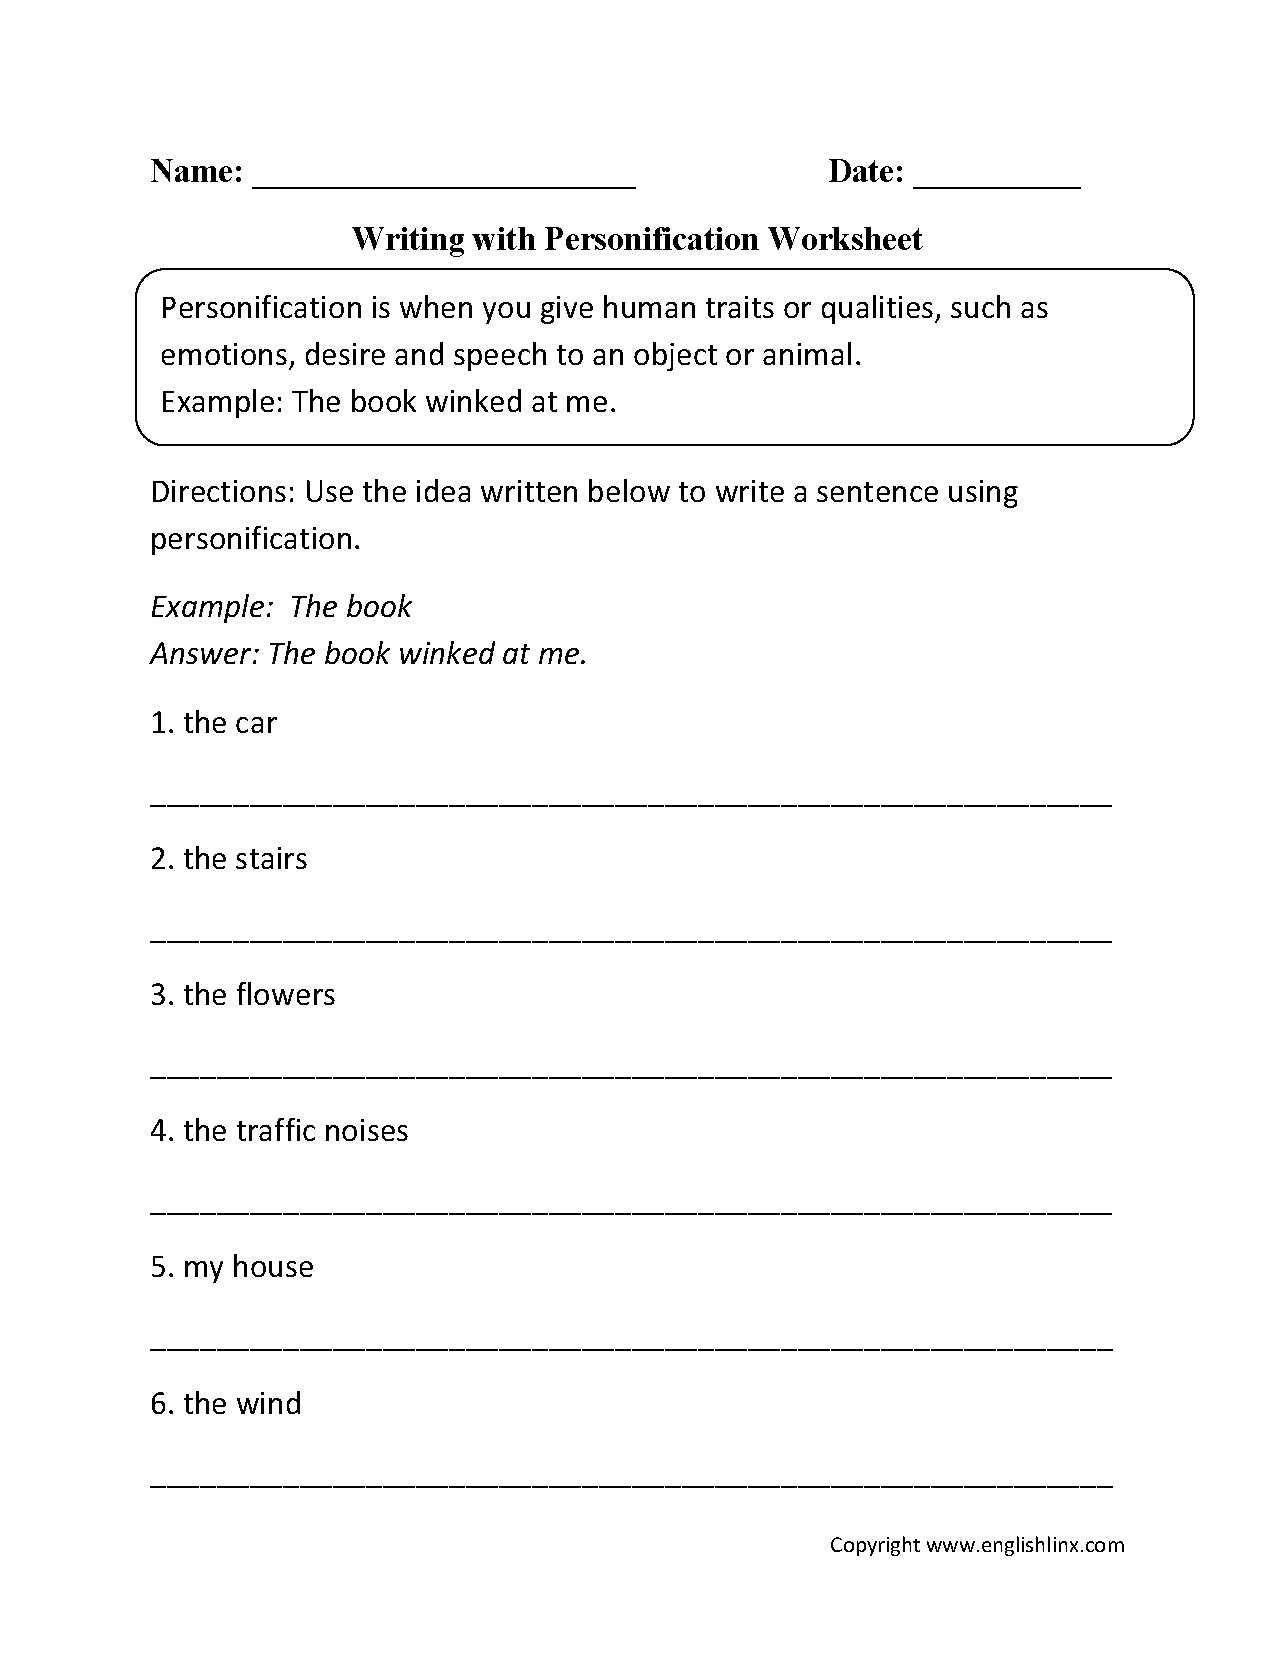 Writing with Personification Worksheet   Personification [ 1662 x 1275 Pixel ]